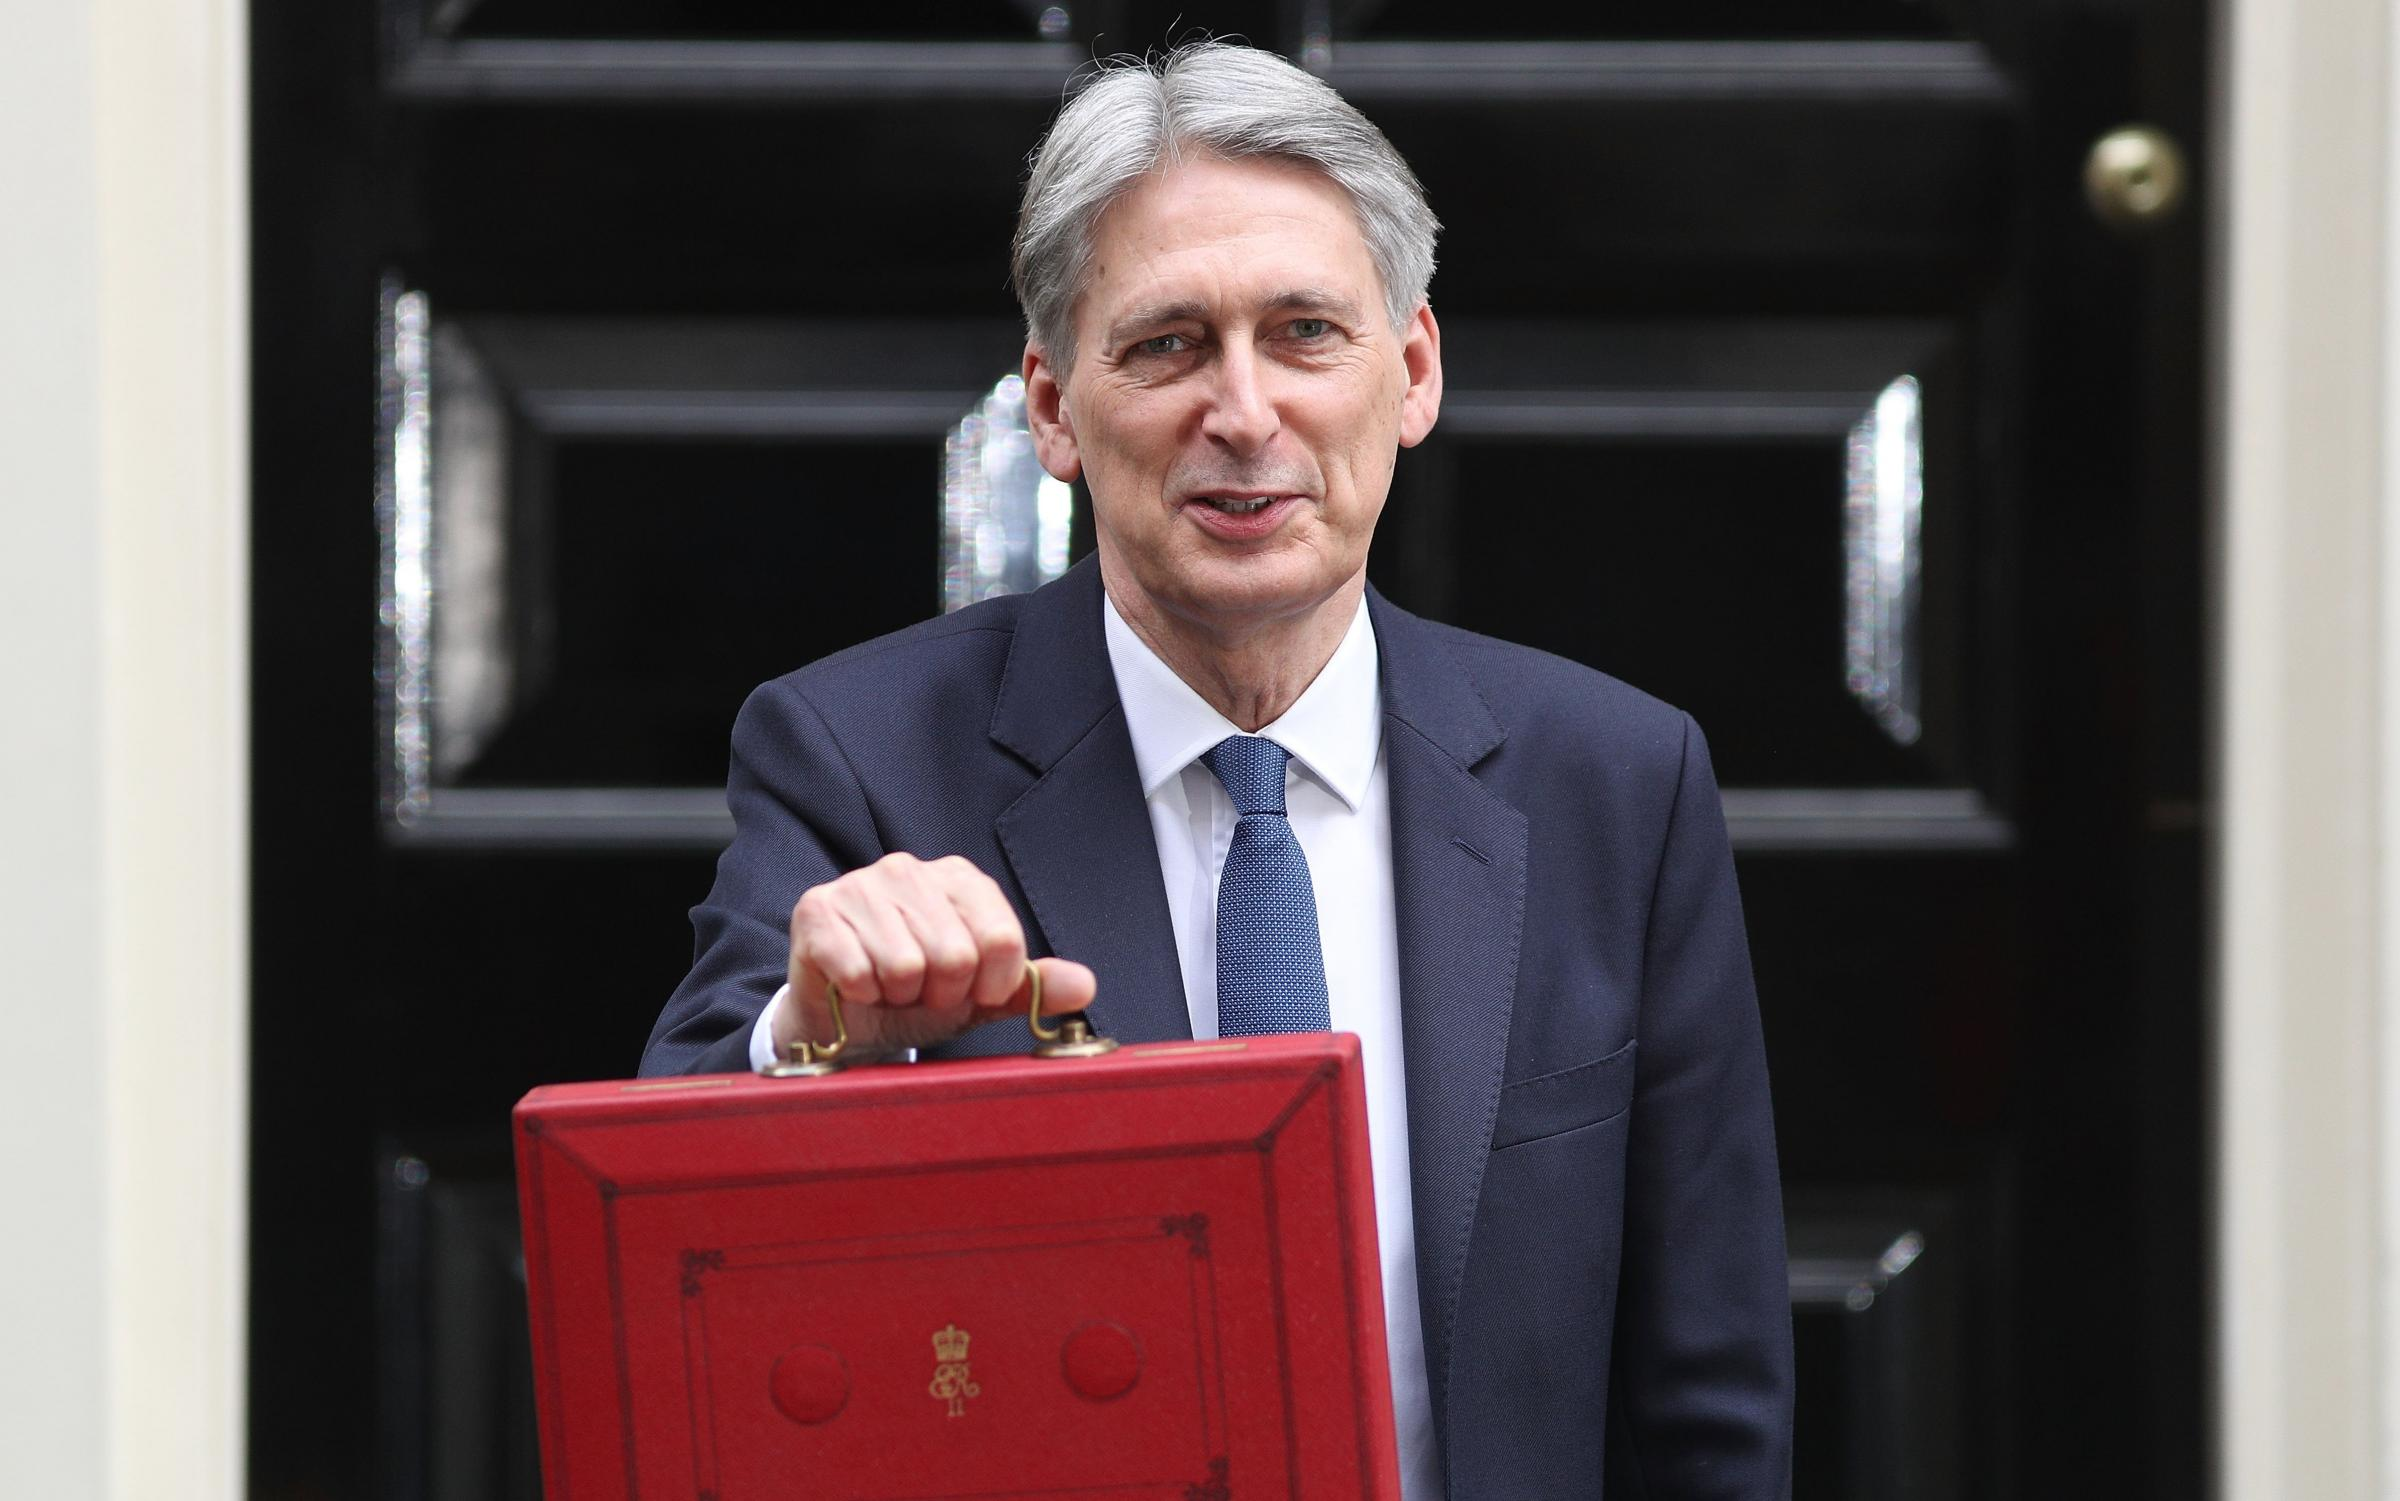 Philip Hammond has been forced to admitted the NHS cannot be boosted by £20 billion without a rise in taxes